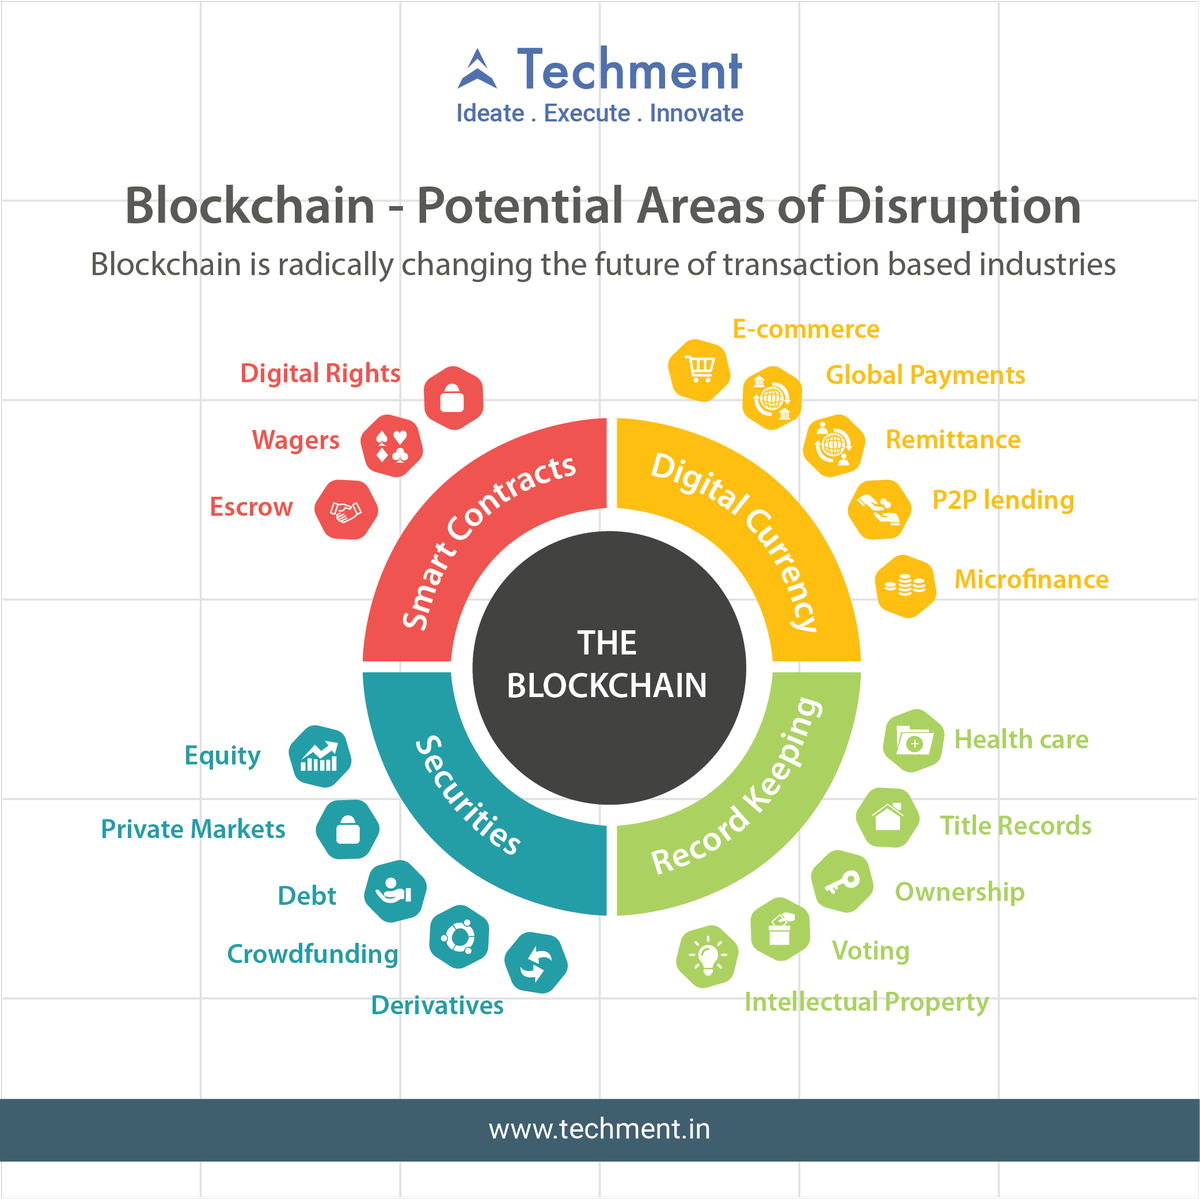 Know about the Blockchain potential areas of Disruption